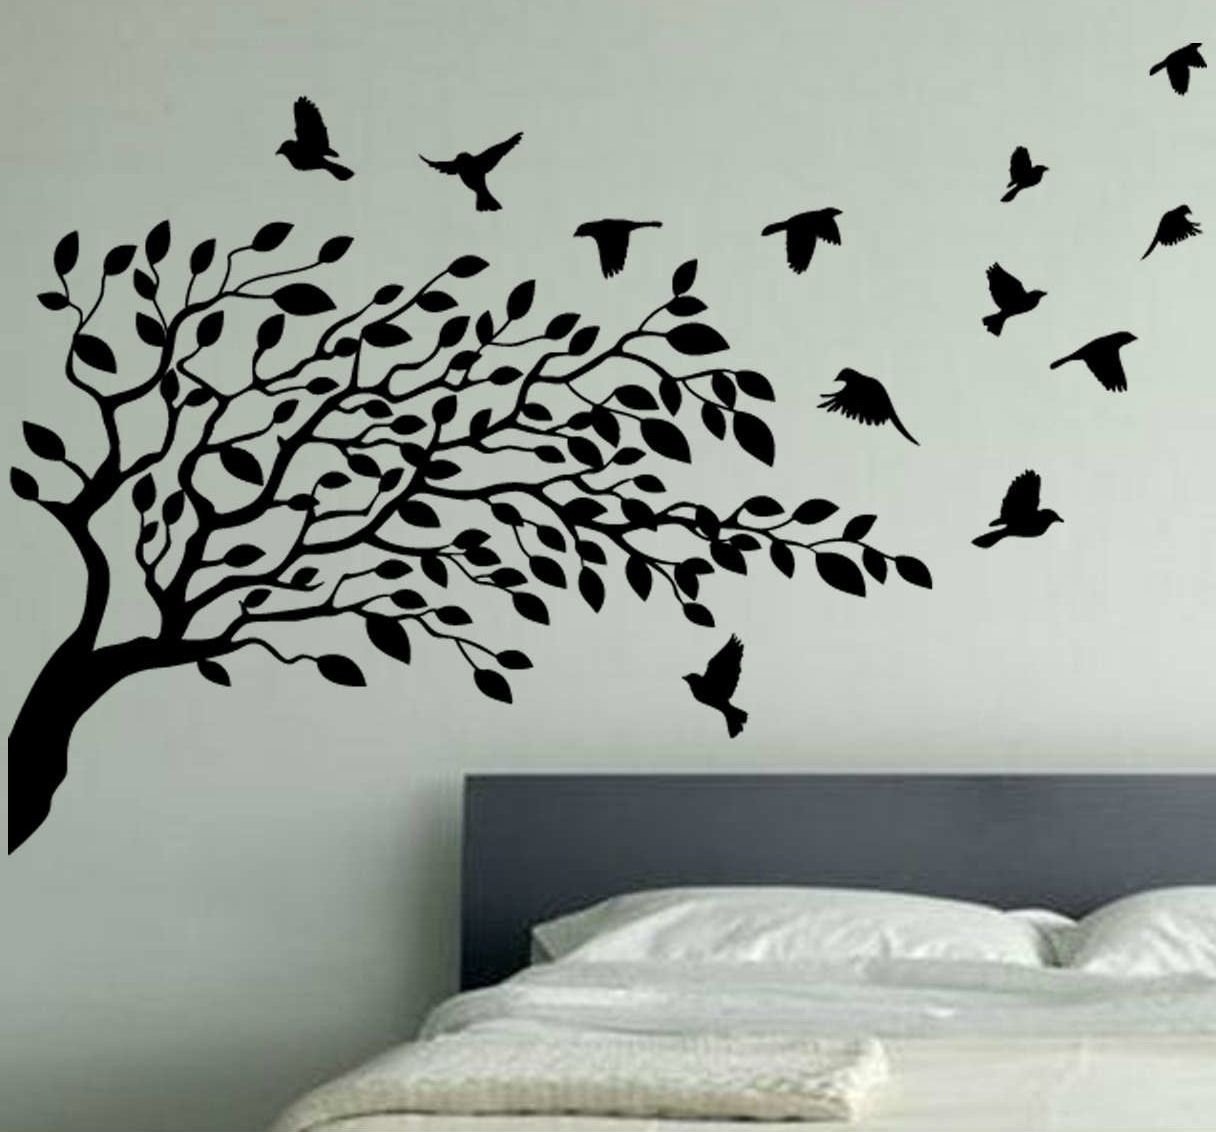 Wallpaper wall decals stickers art vinyl removable for Tree wall art